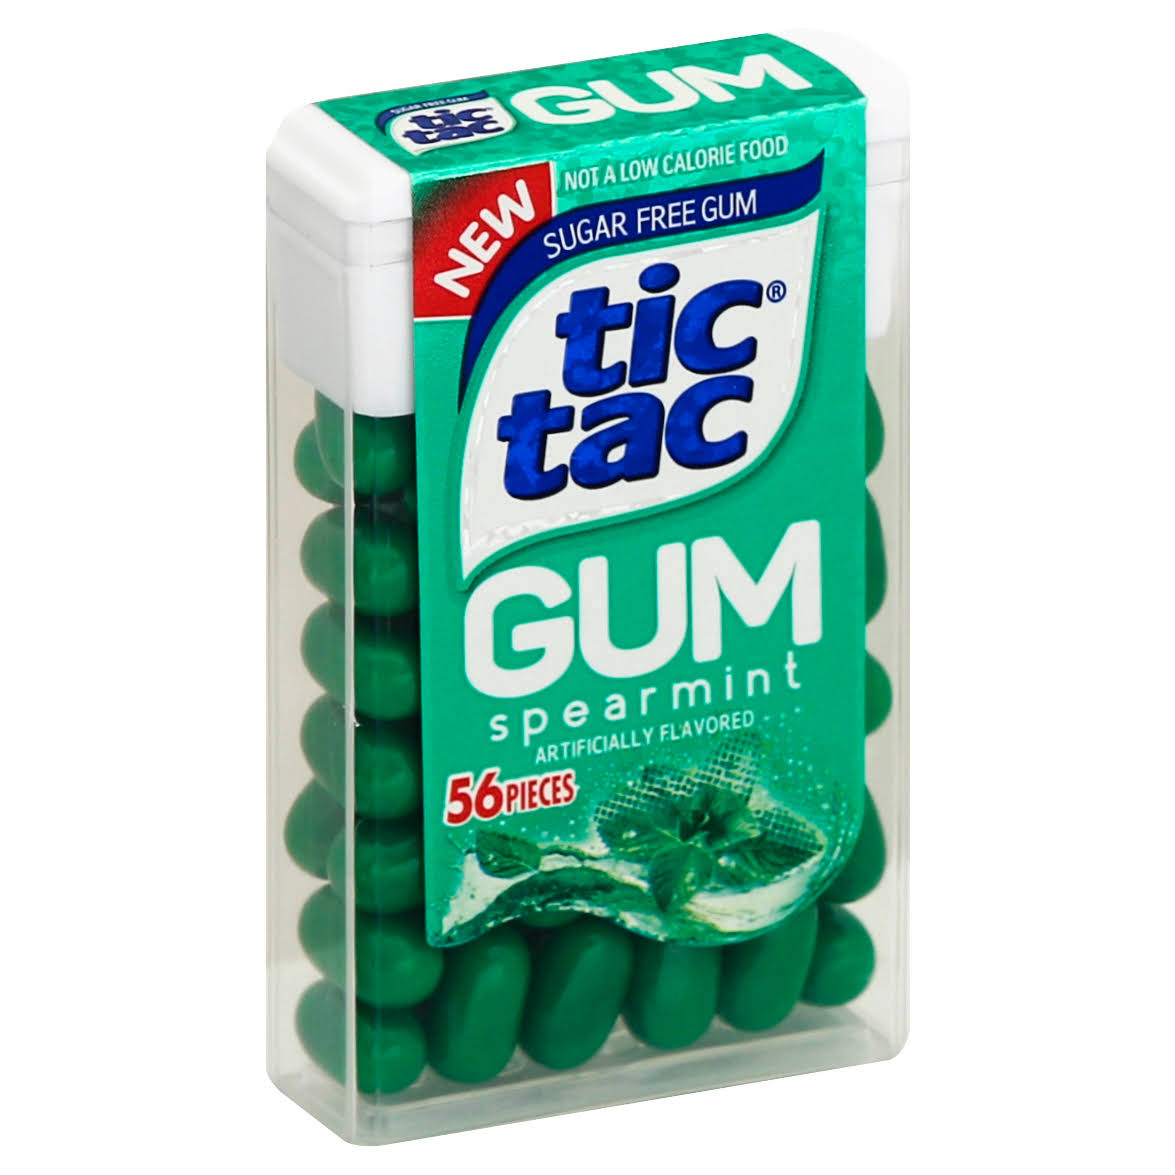 Tic Tac Gum, Sugar Free, Spearmint - 56 pieces